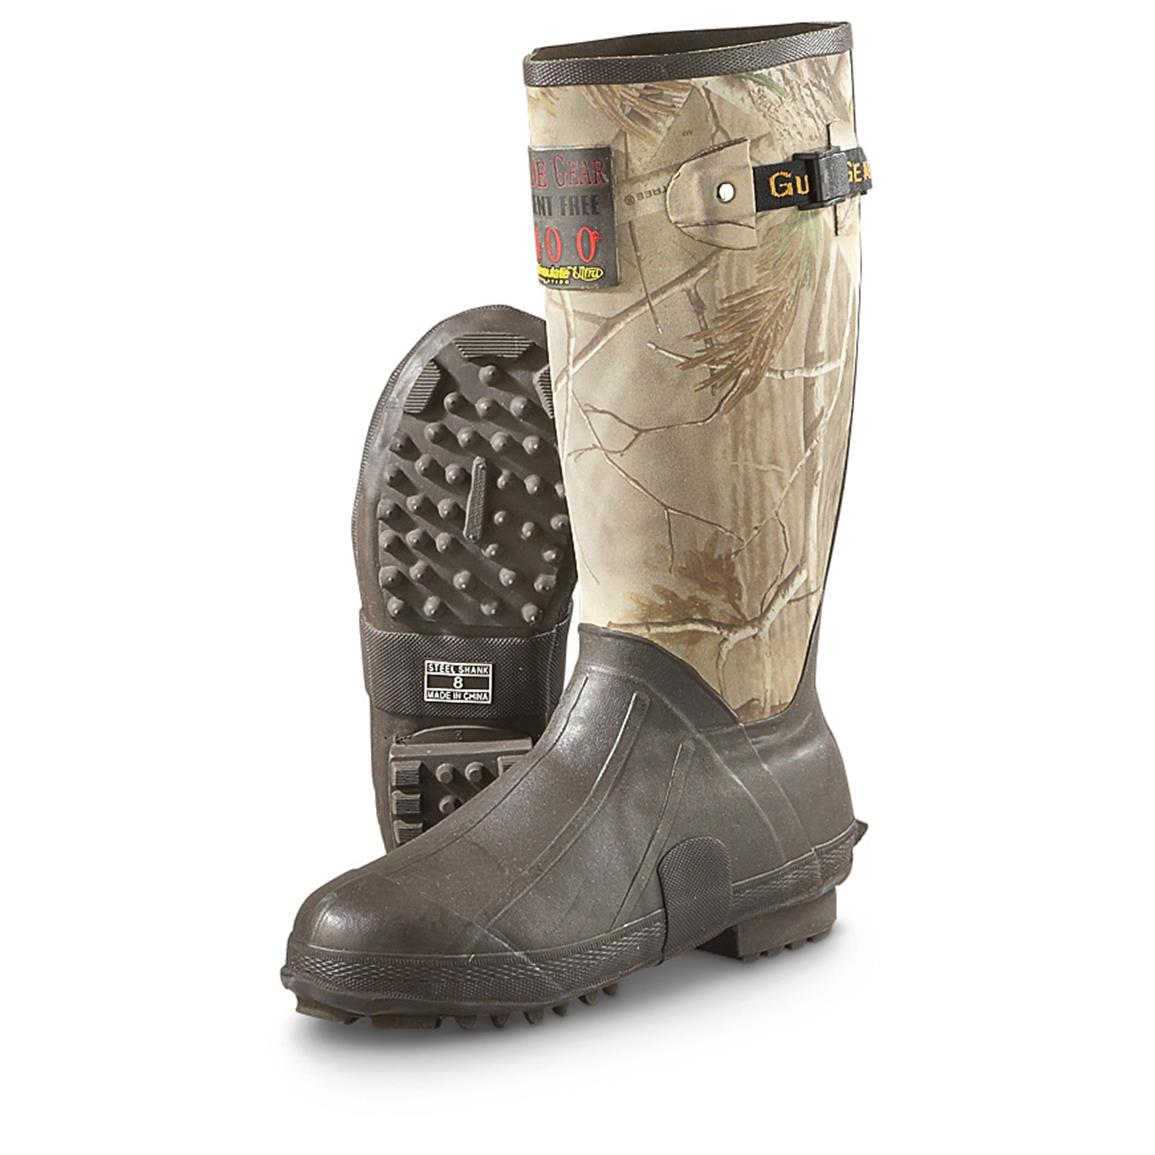 "Guide Gear Men's 15"" Insulated Rubber Boots, 400 Grams, Realtree AP Camo"